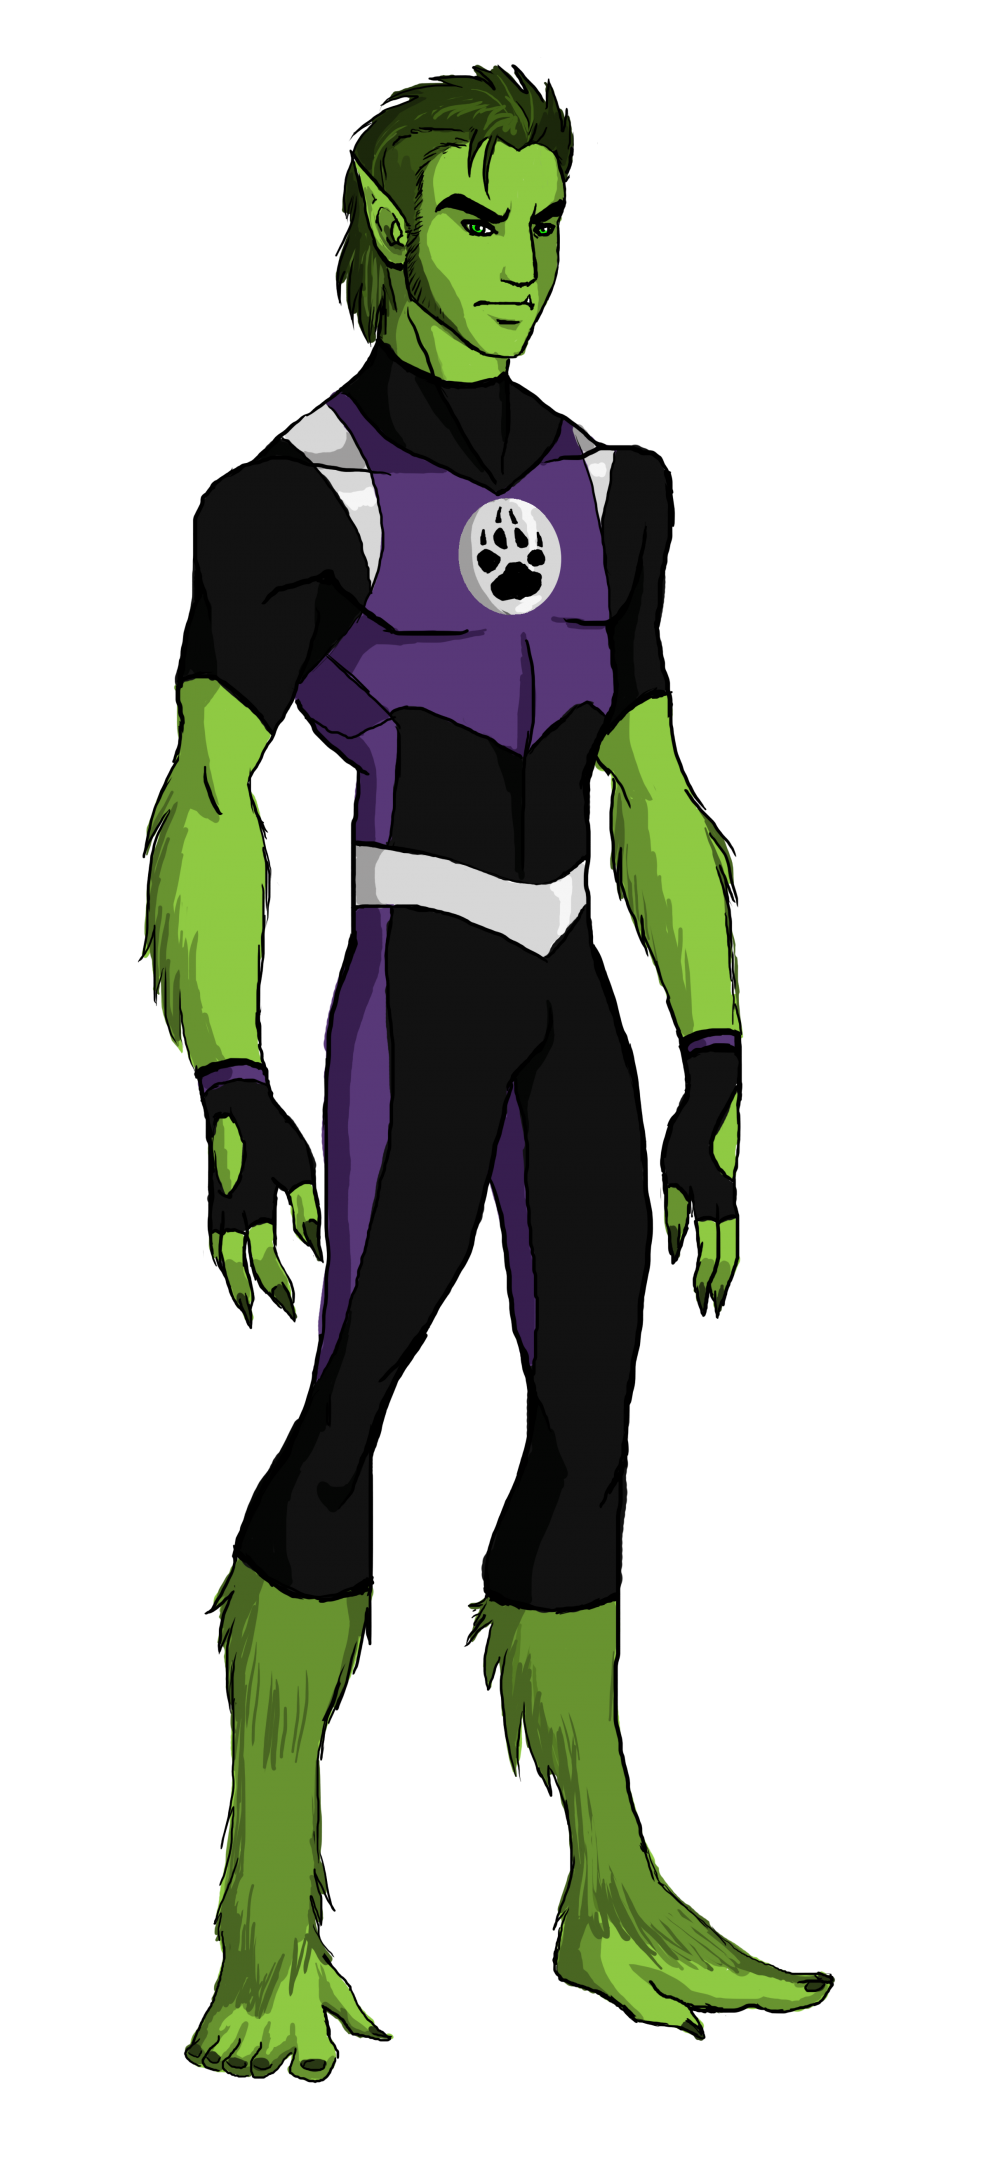 Download Beast Boy PNG Pic For Designing Projects.